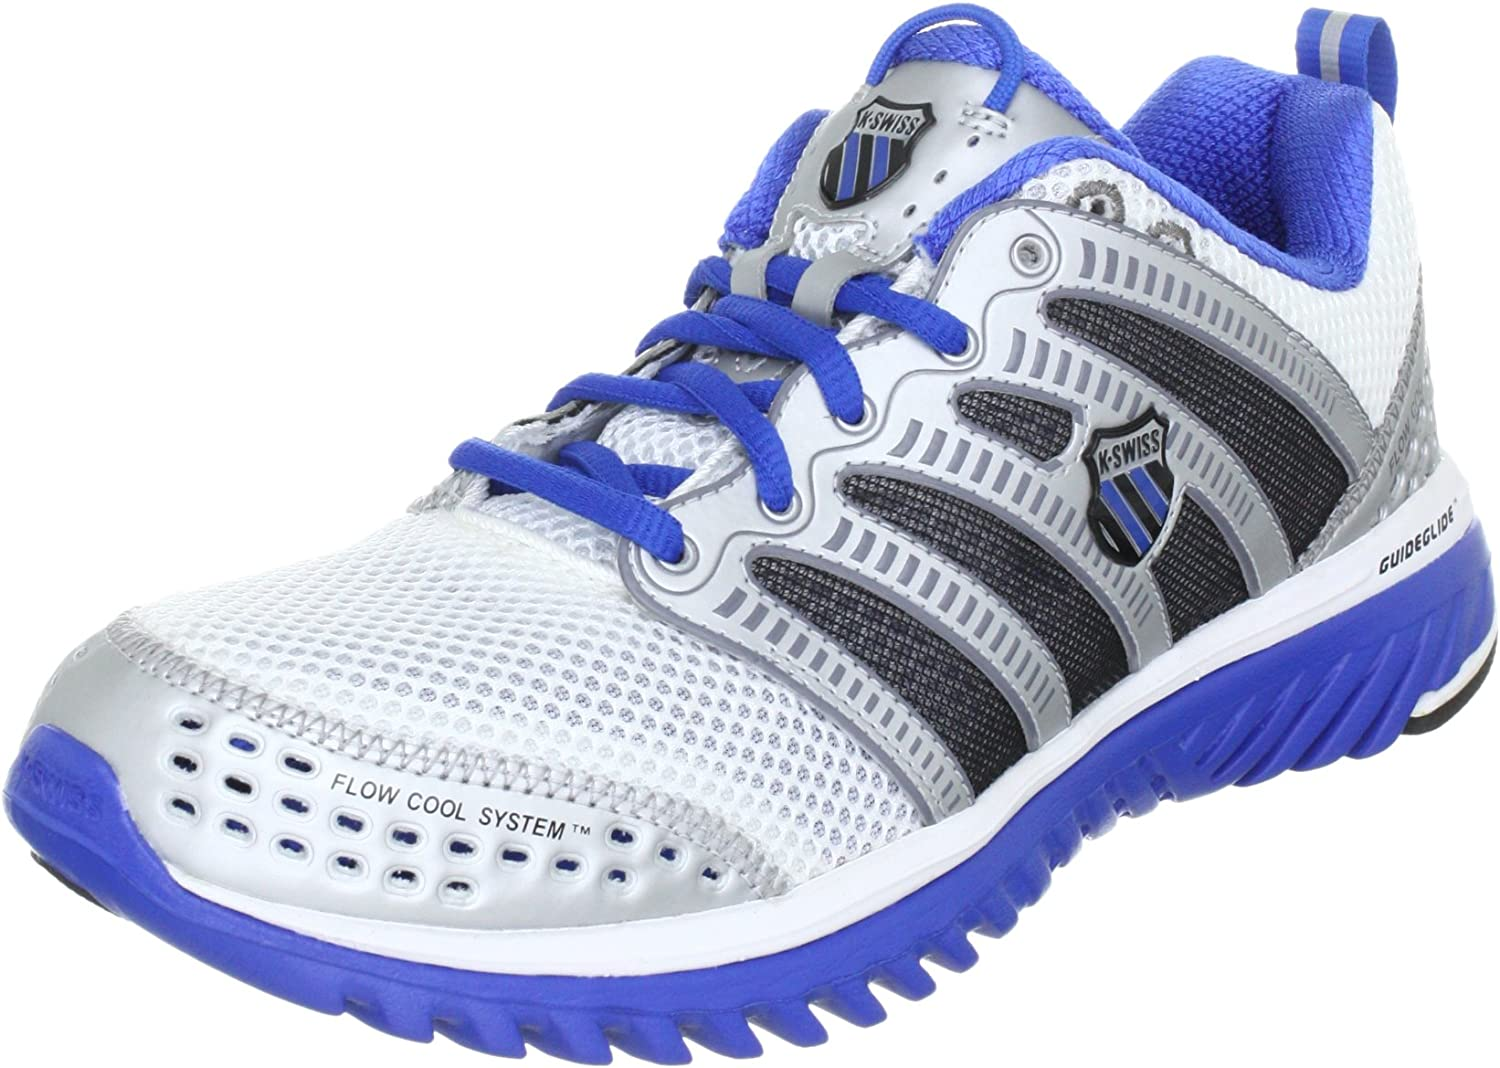 K-Swiss Blade-Light Run 02553-174-M - Zapatillas de Correr para Hombre, Color Blanco, Talla 40: Amazon.es: Zapatos y complementos